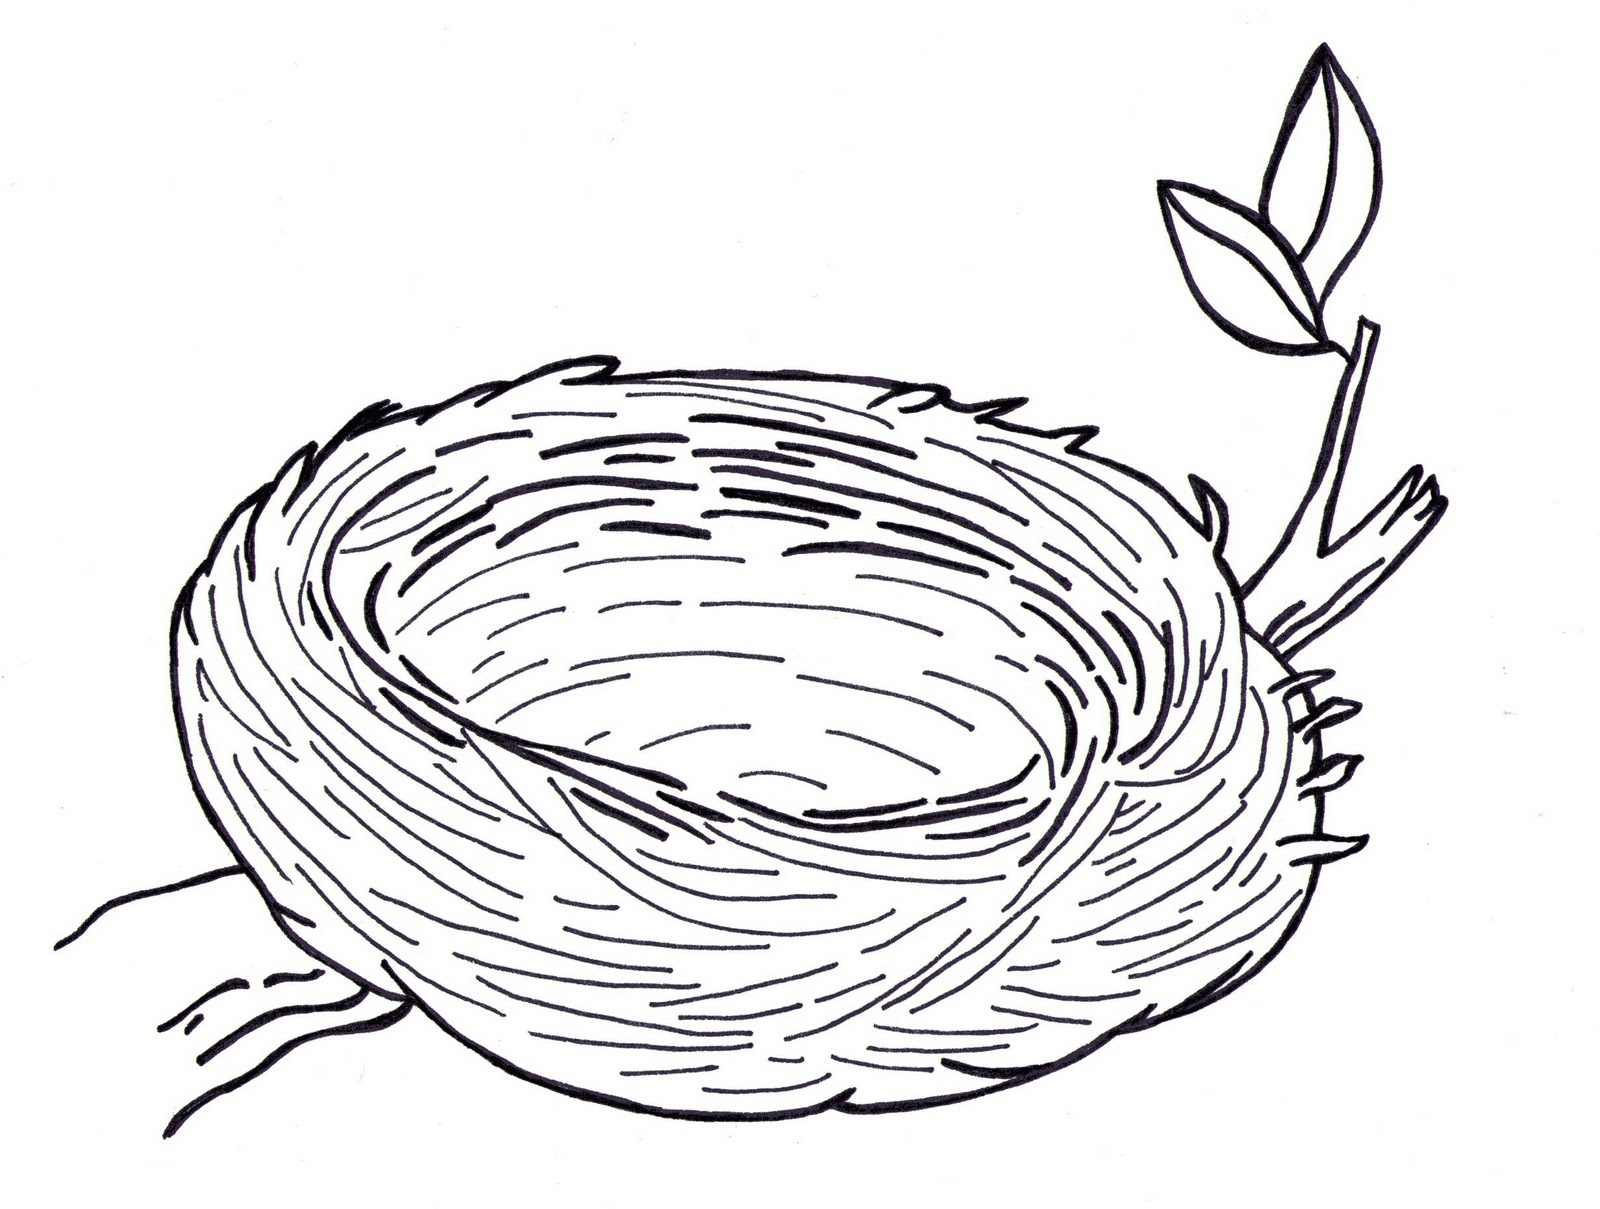 Empty nest pictures clipart png library stock Nest Clipart Black And White – Pencil And In Color Nest Clipart in ... png library stock